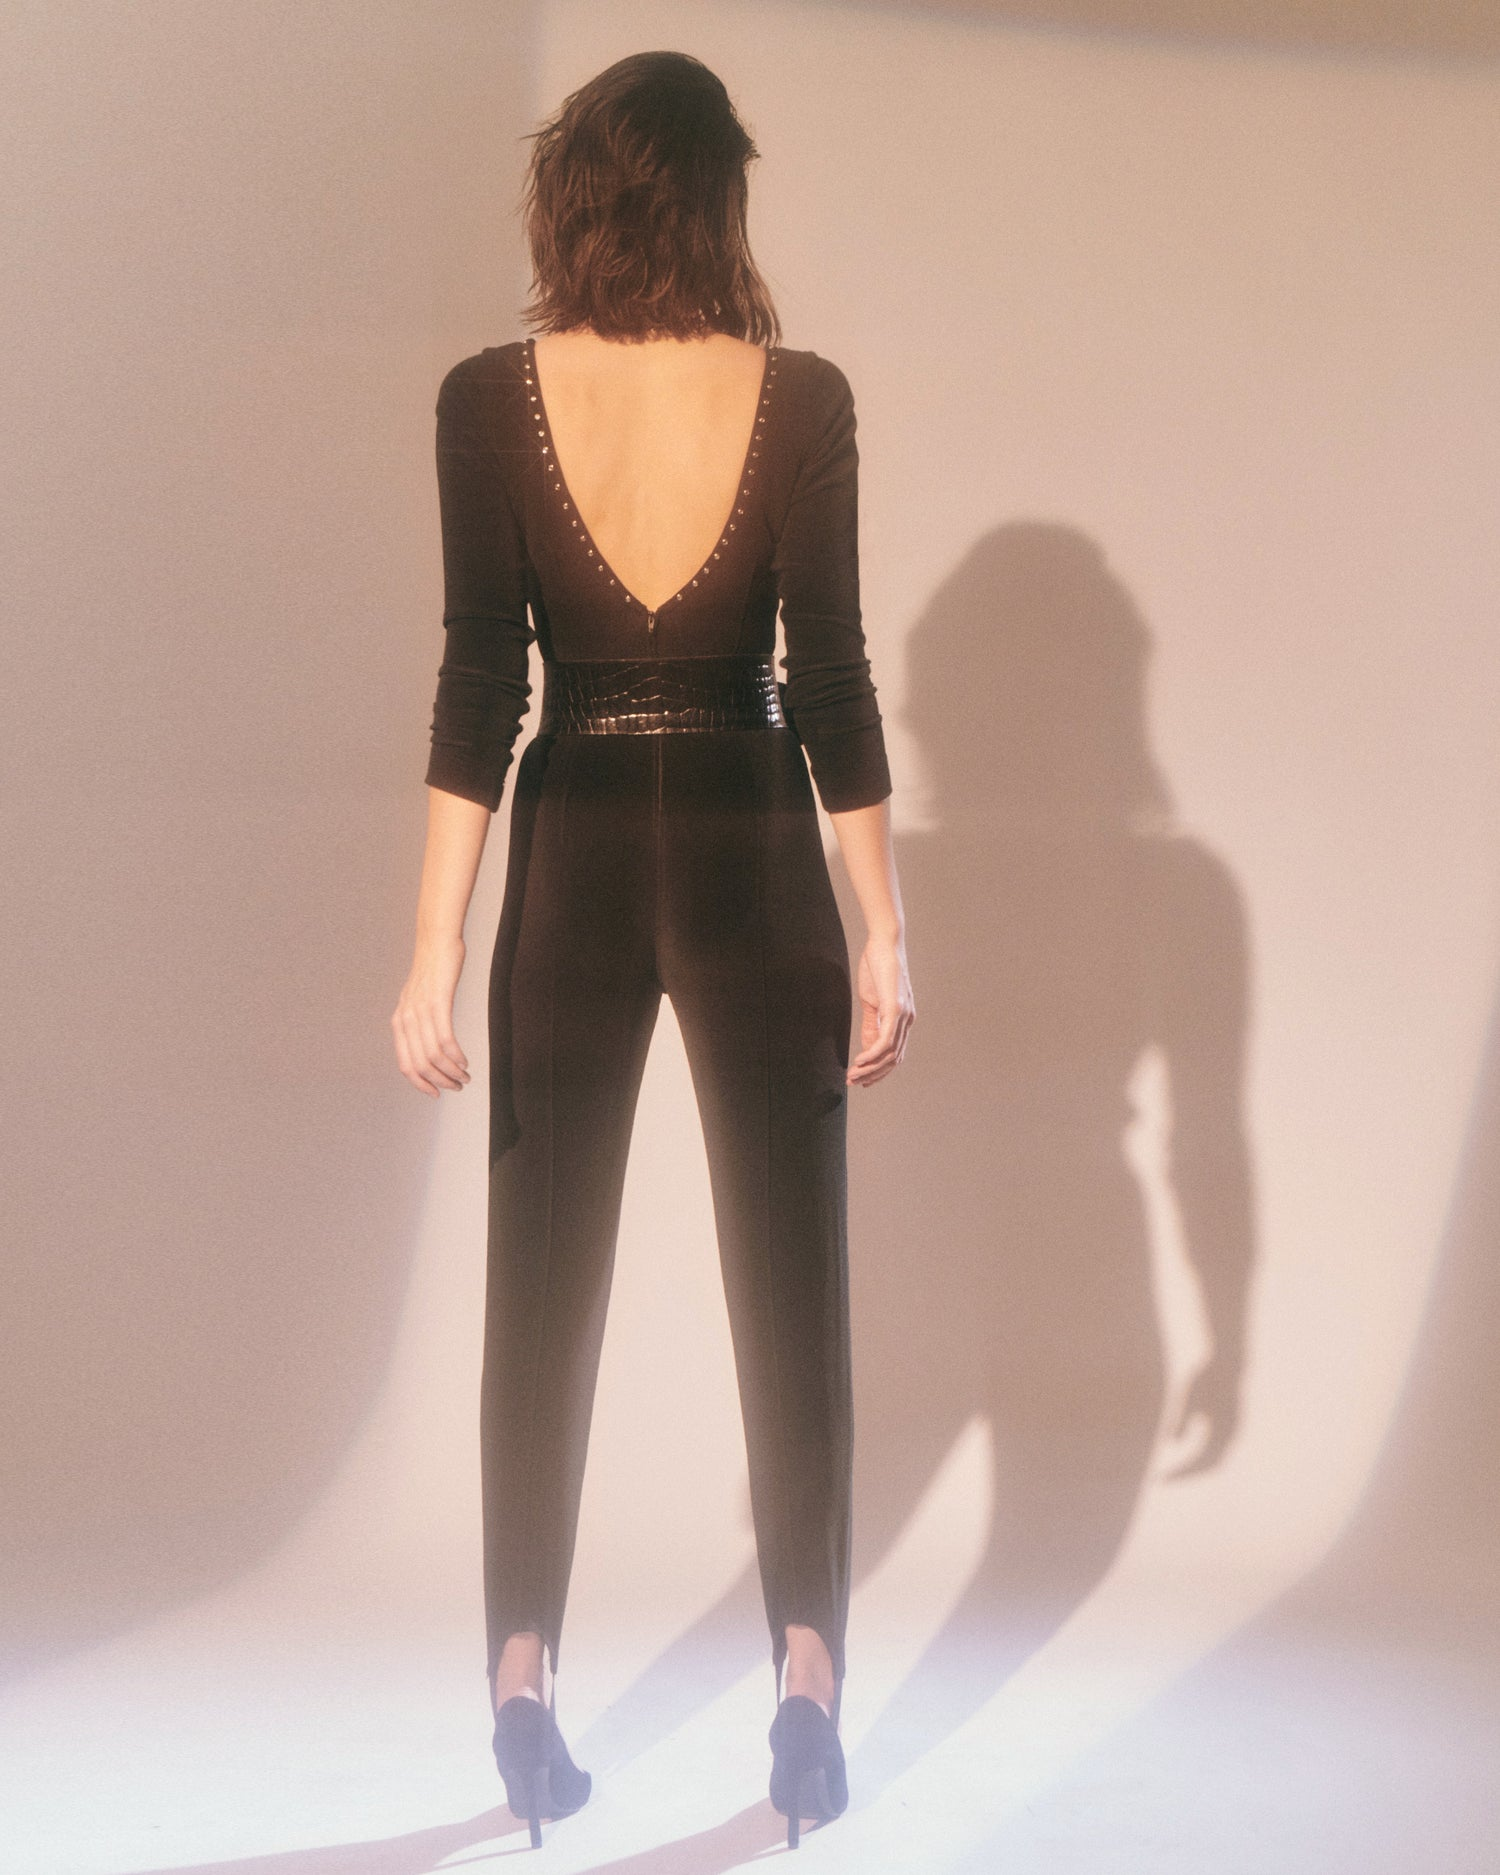 West End Girl // Embellished Catsuit